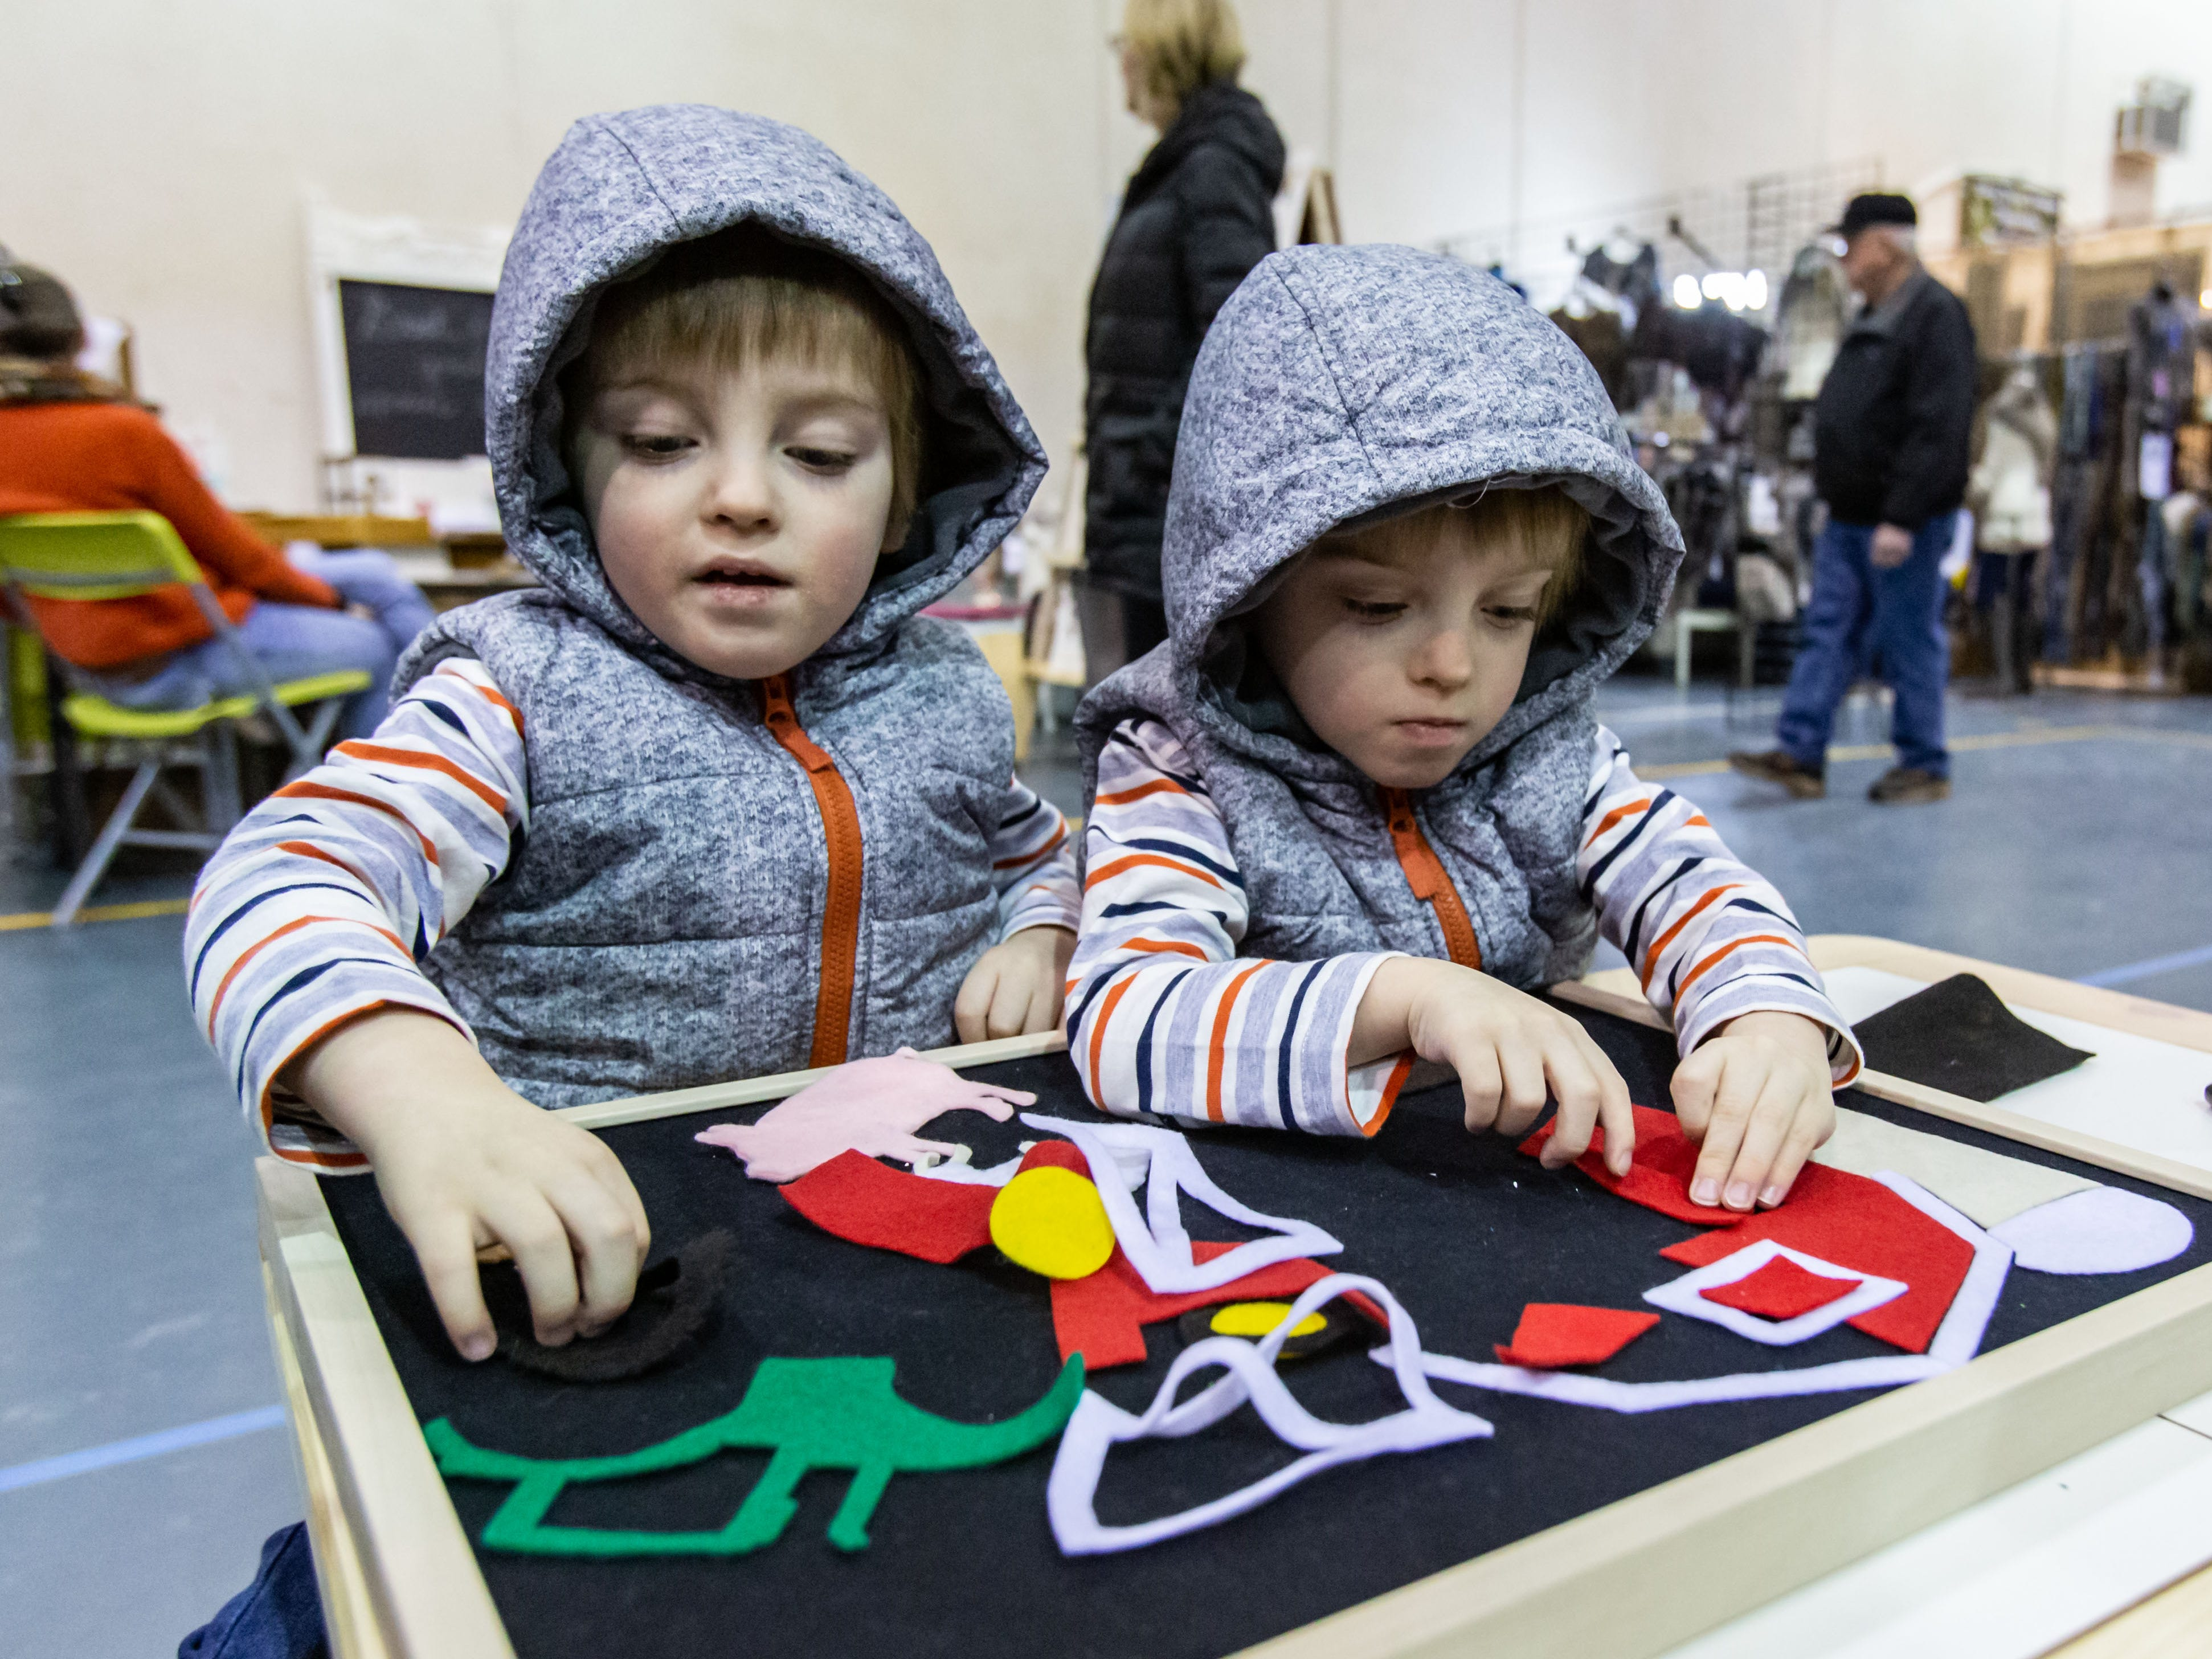 Three-year-old twins, Arthur (left) and Oliver Mooney of Port Washington, play a game from Drift & Row during the re:Craft and Relic show at the Milwaukee County Sports Complex in Franklin on Sunday, Jan. 27, 2019. Milwaukee based Drift & Row offers a handmade collection of toys and games that support language and learning.